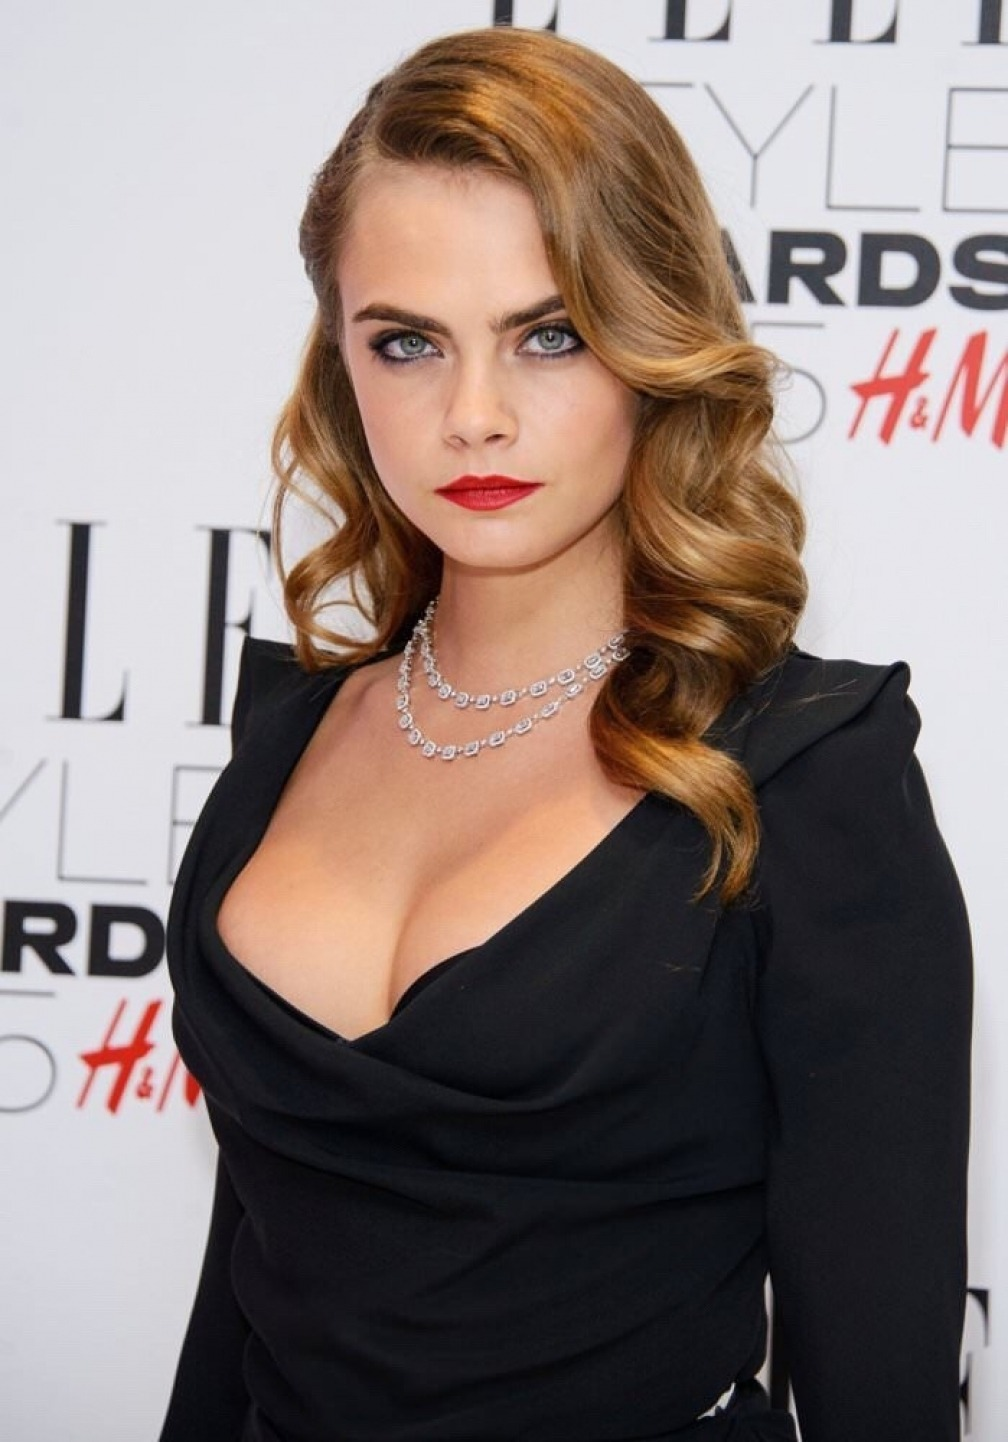 Cara Delevingne S Net Worth Movies Tv Shows Career And